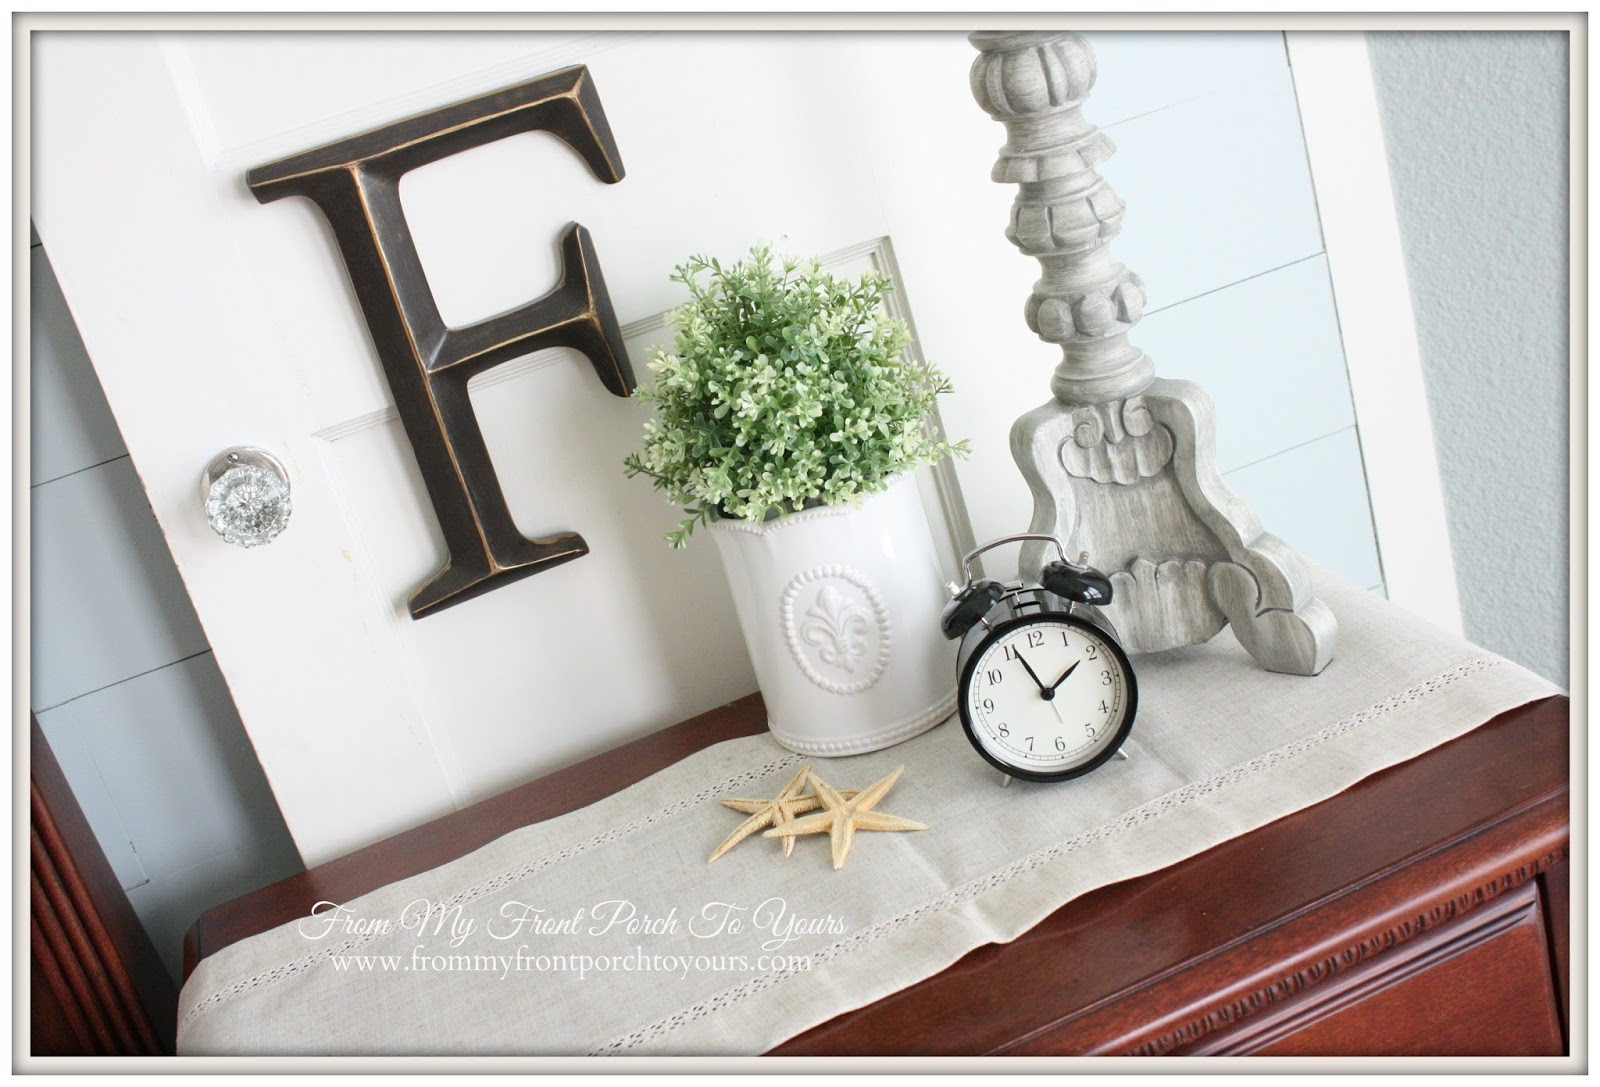 From My Front Porch To Yours- French Farmhouse Bedroom Ikea clock